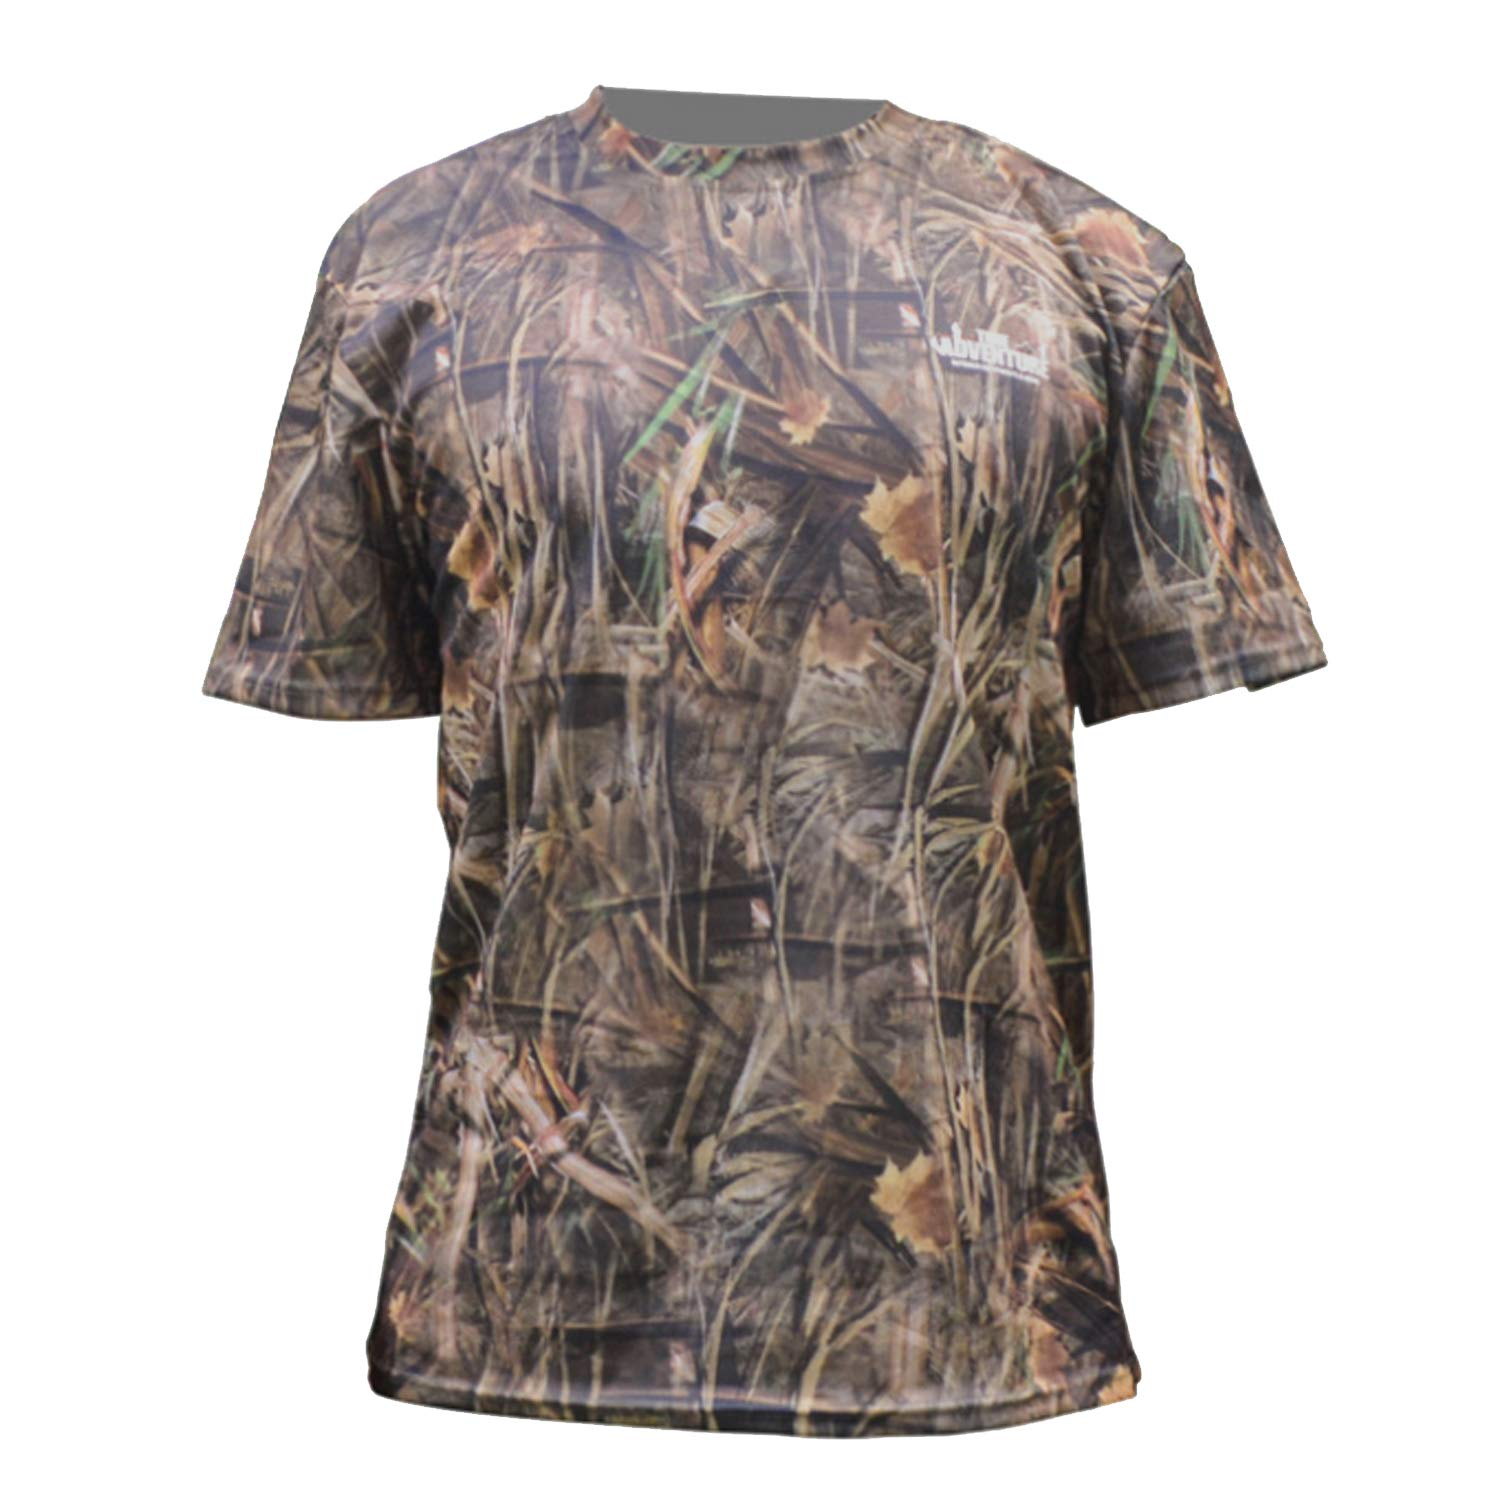 fd5b12e89fc19 Eamber Realtree Reed Camo Hunting Shirt Lightweight Breathable Quick-Dying T -Shirt Hunting Clothing for Jungle Hunting,Shooting, Airsoft, ...